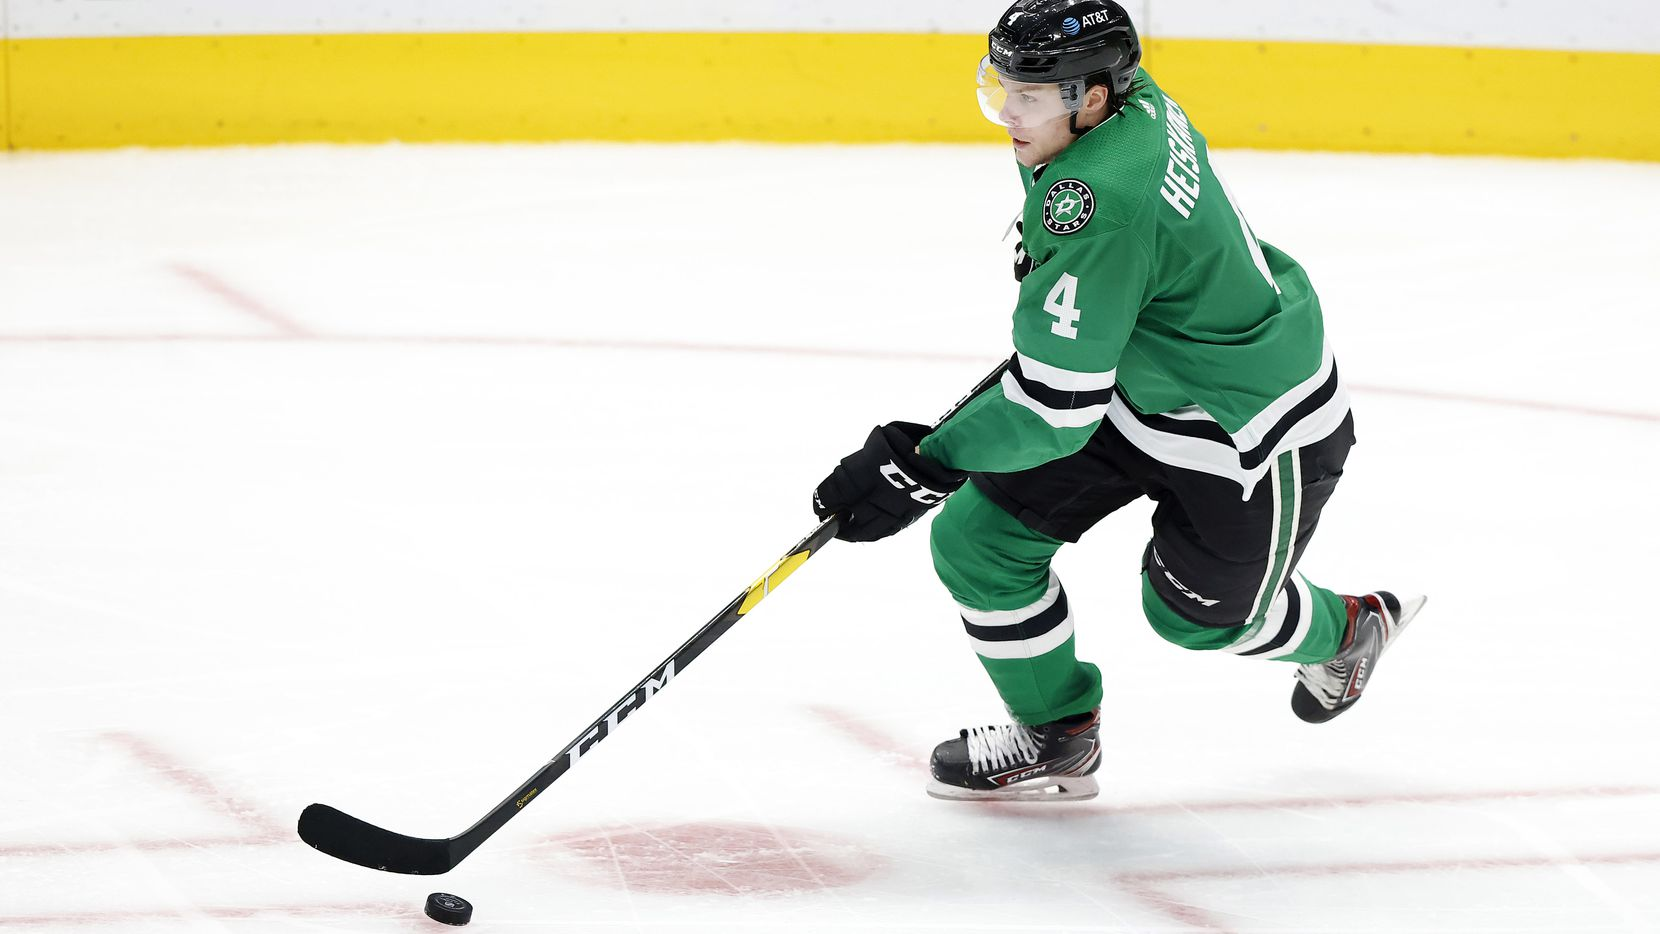 Dallas Stars defenseman Miro Heiskanen (4) brings the puck up ice against the Columbus Blue Jackets during the third period at the American Airlines Center in Dallas, Thursday, March 4, 2021.